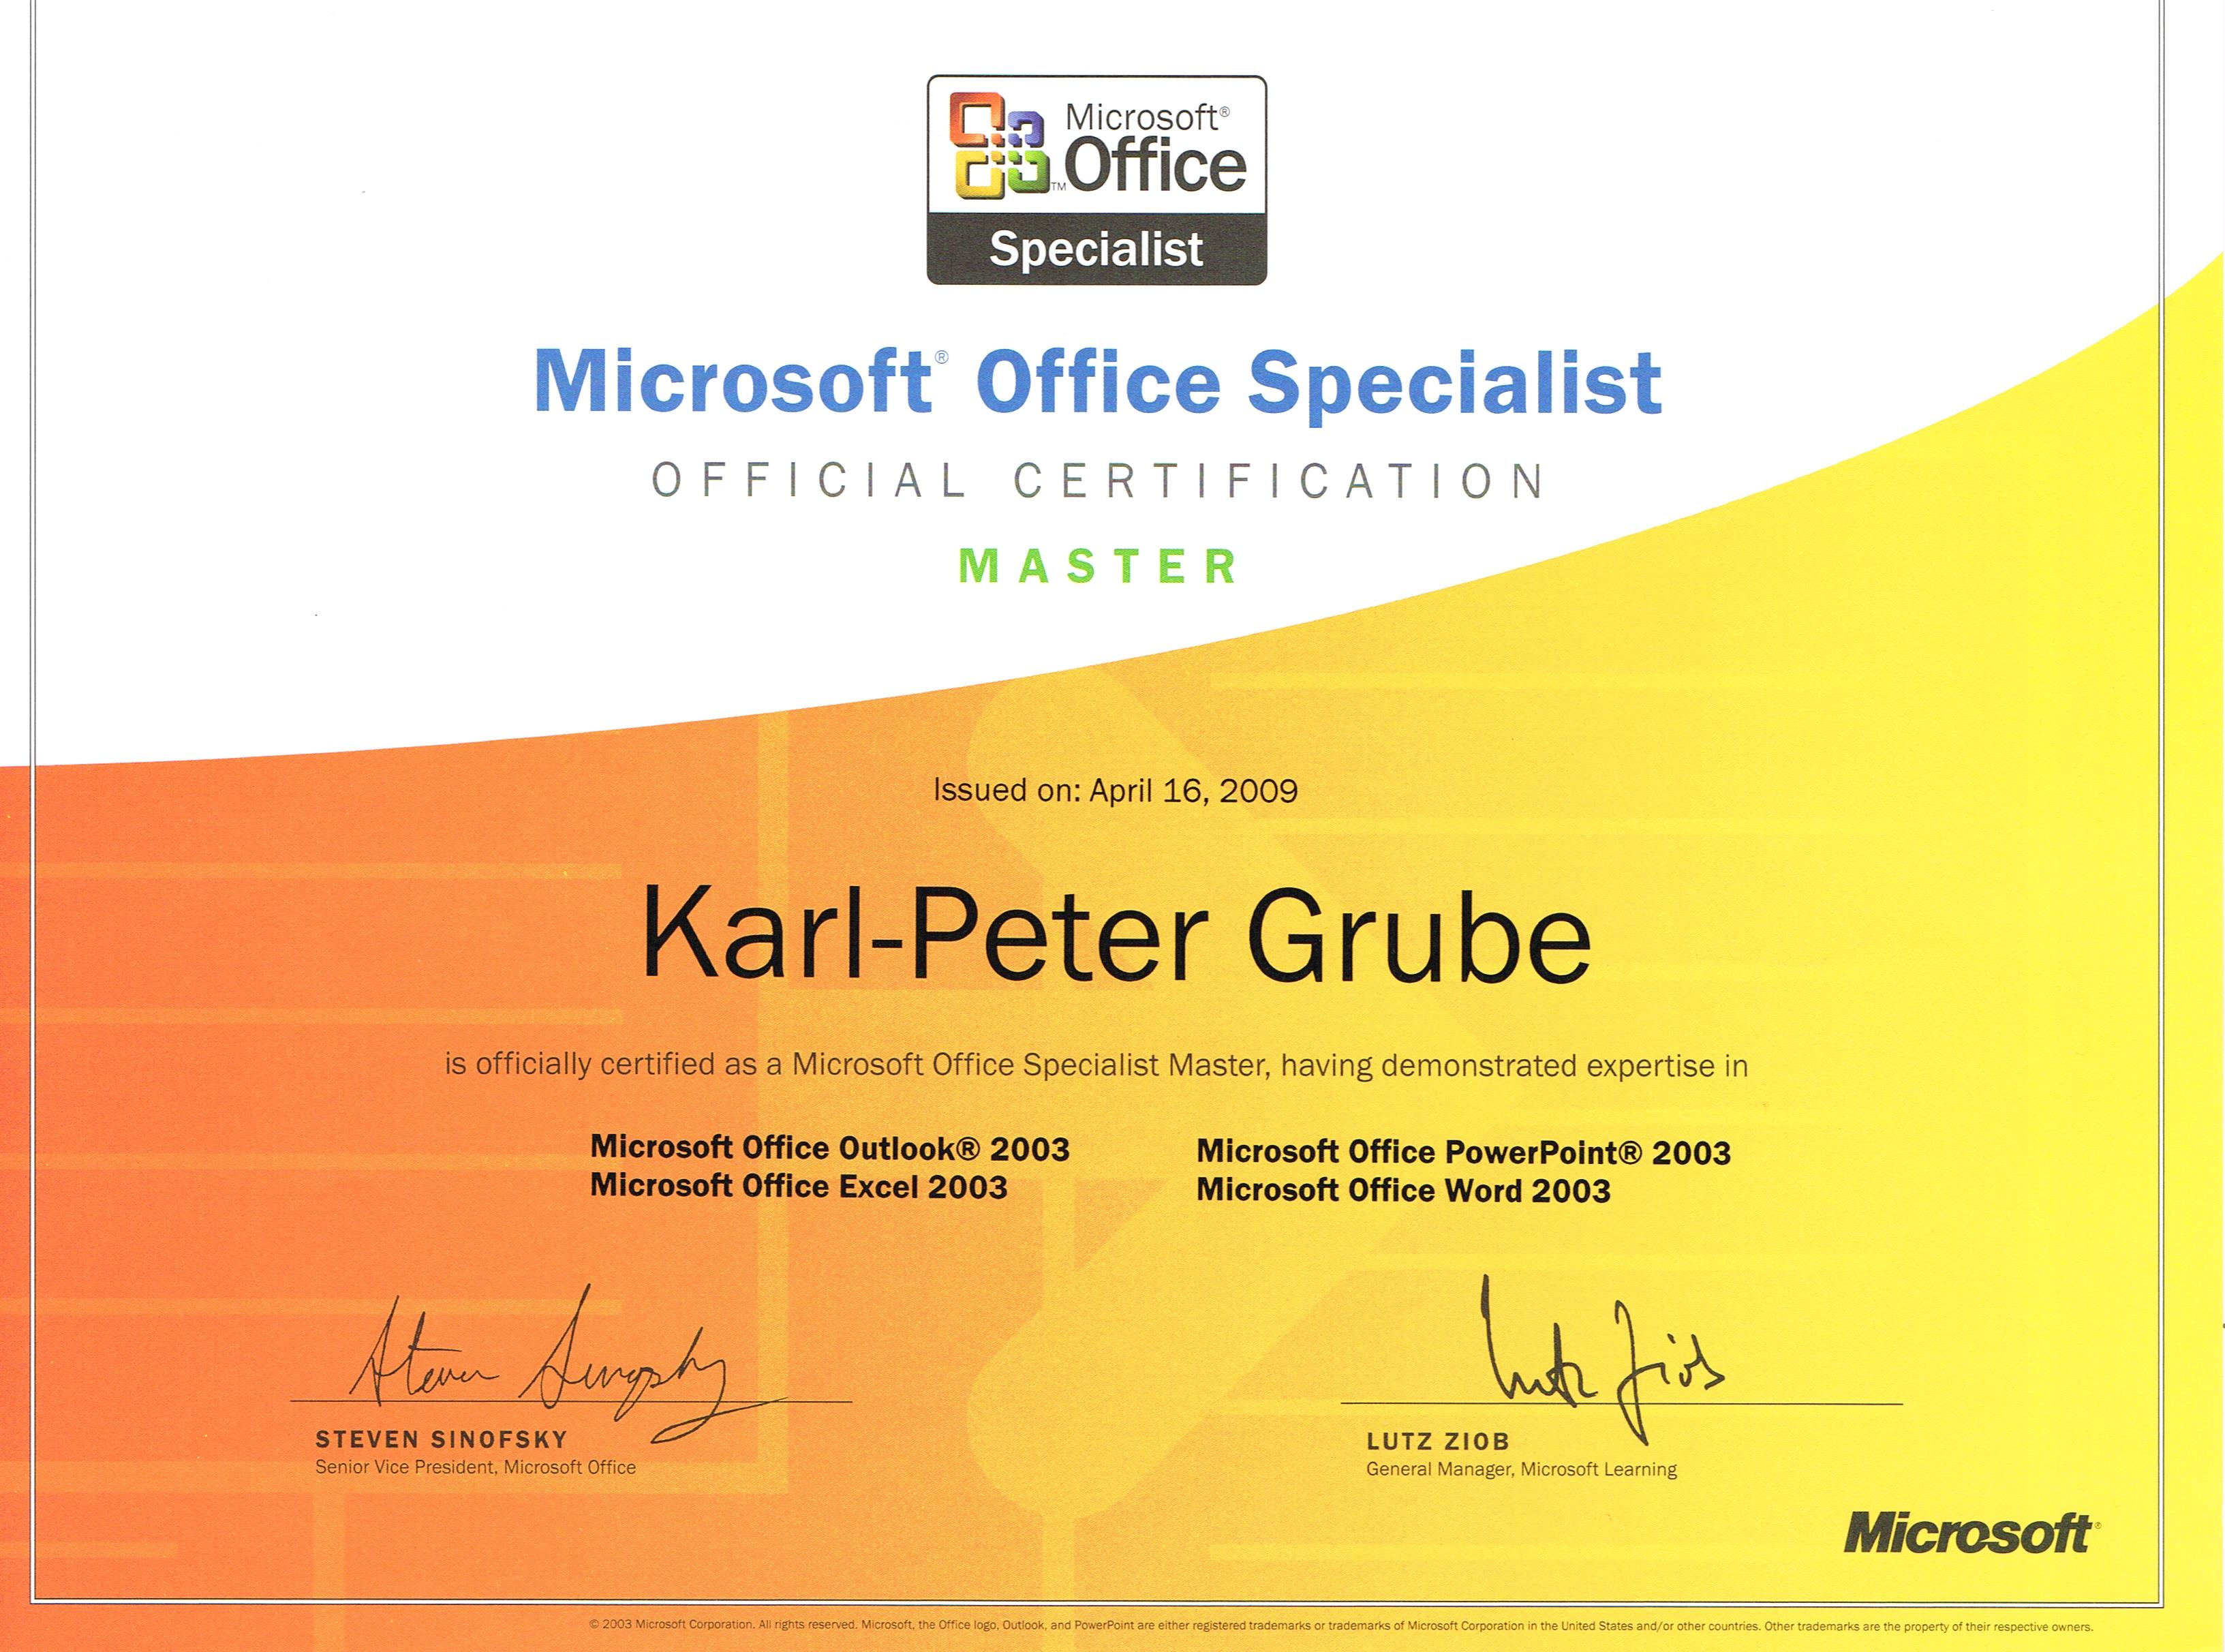 Microsoft Office Specialist Master Certification 2009 Mobbing